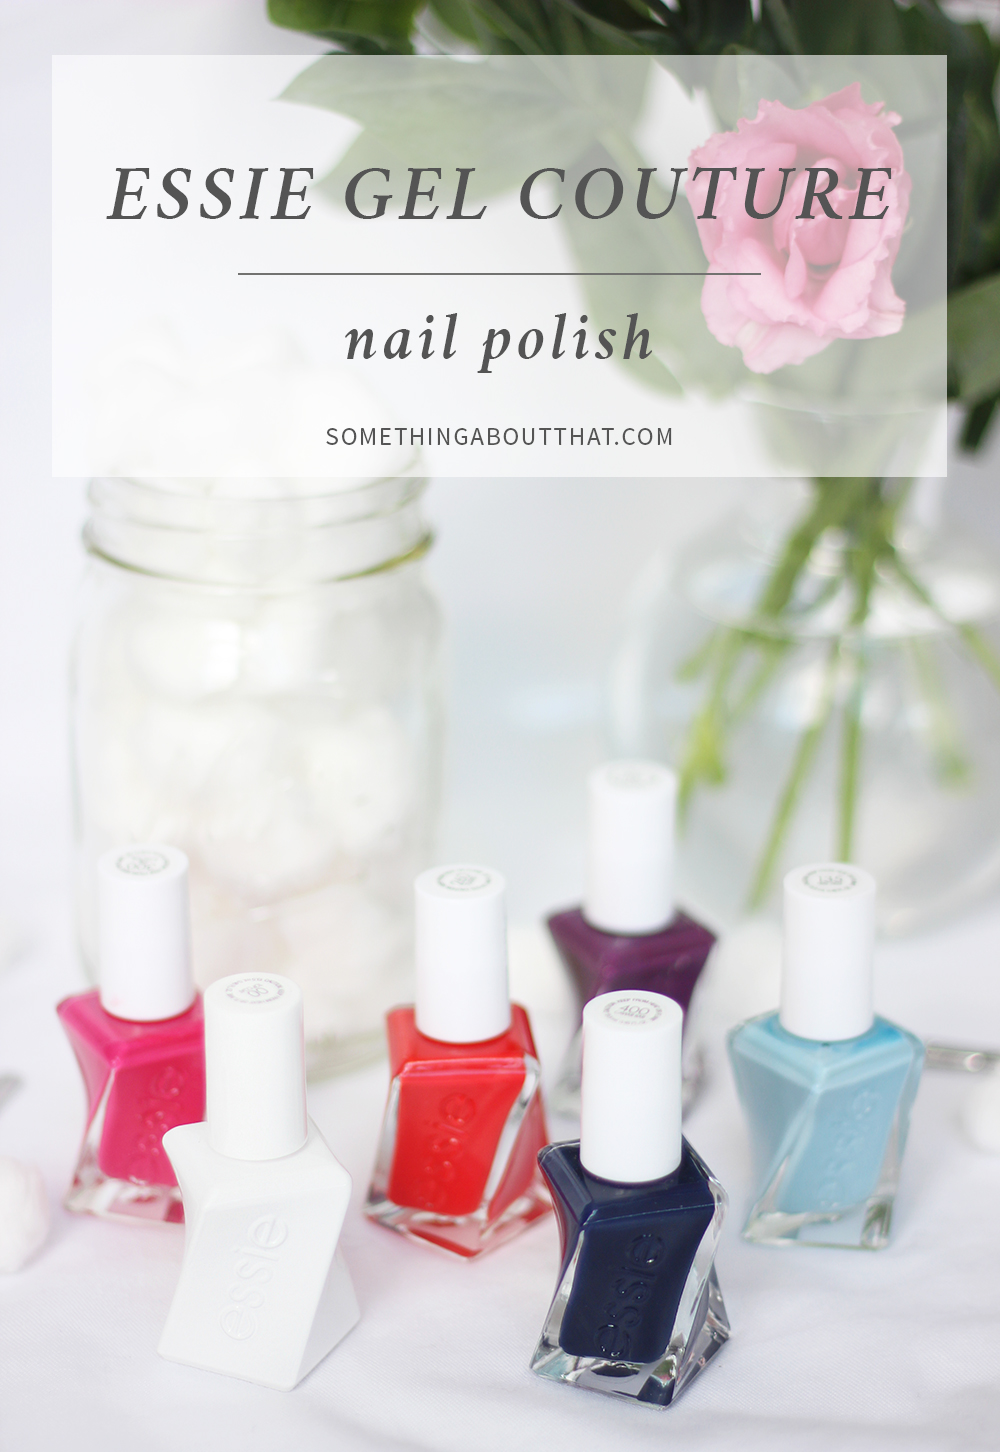 Essie Gel Couture Nail Polish - Product Review